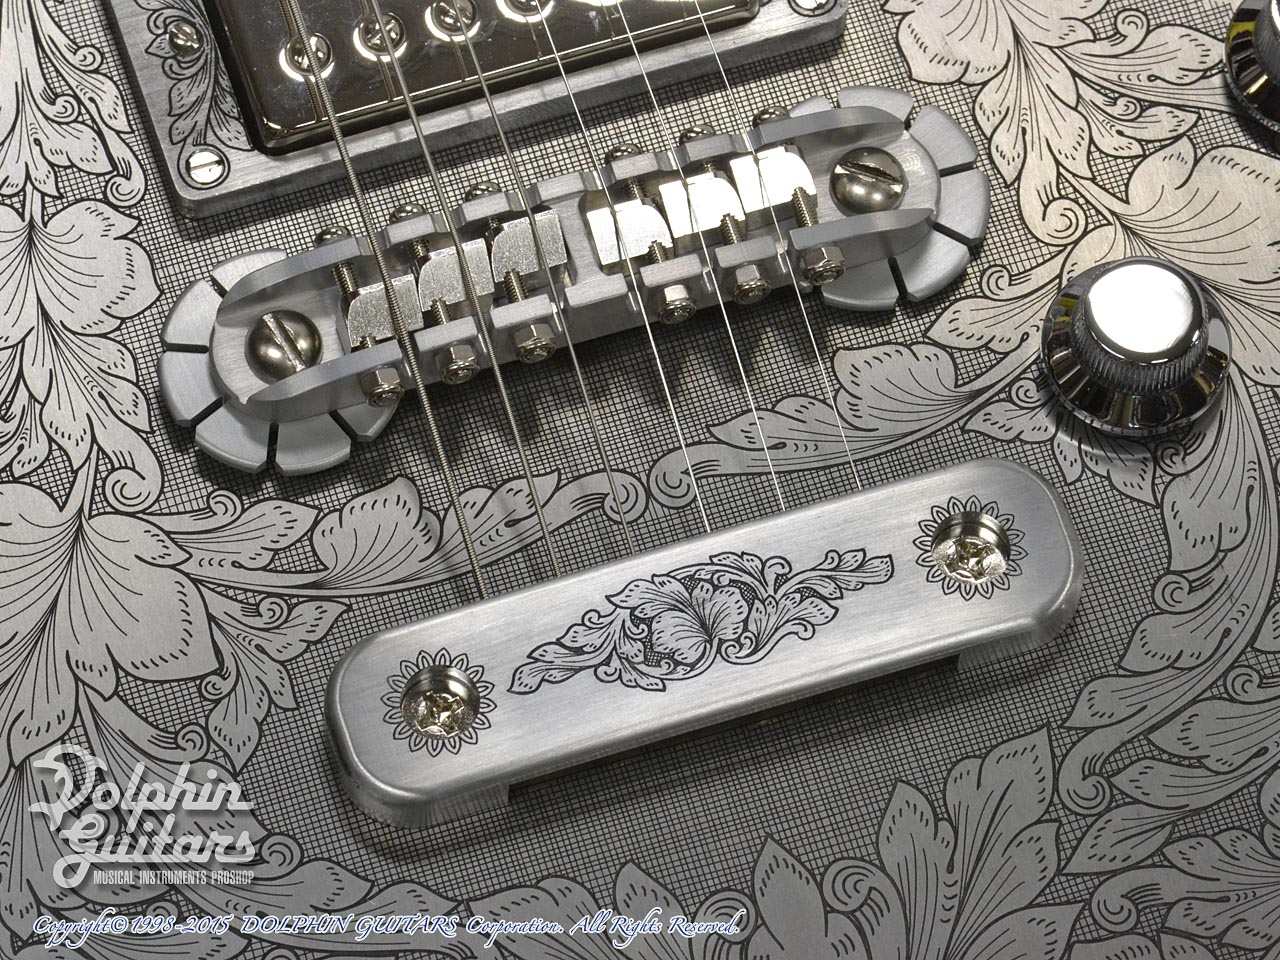 ZEMAITIS =Custom Shop=: CS24MF 2B (8)